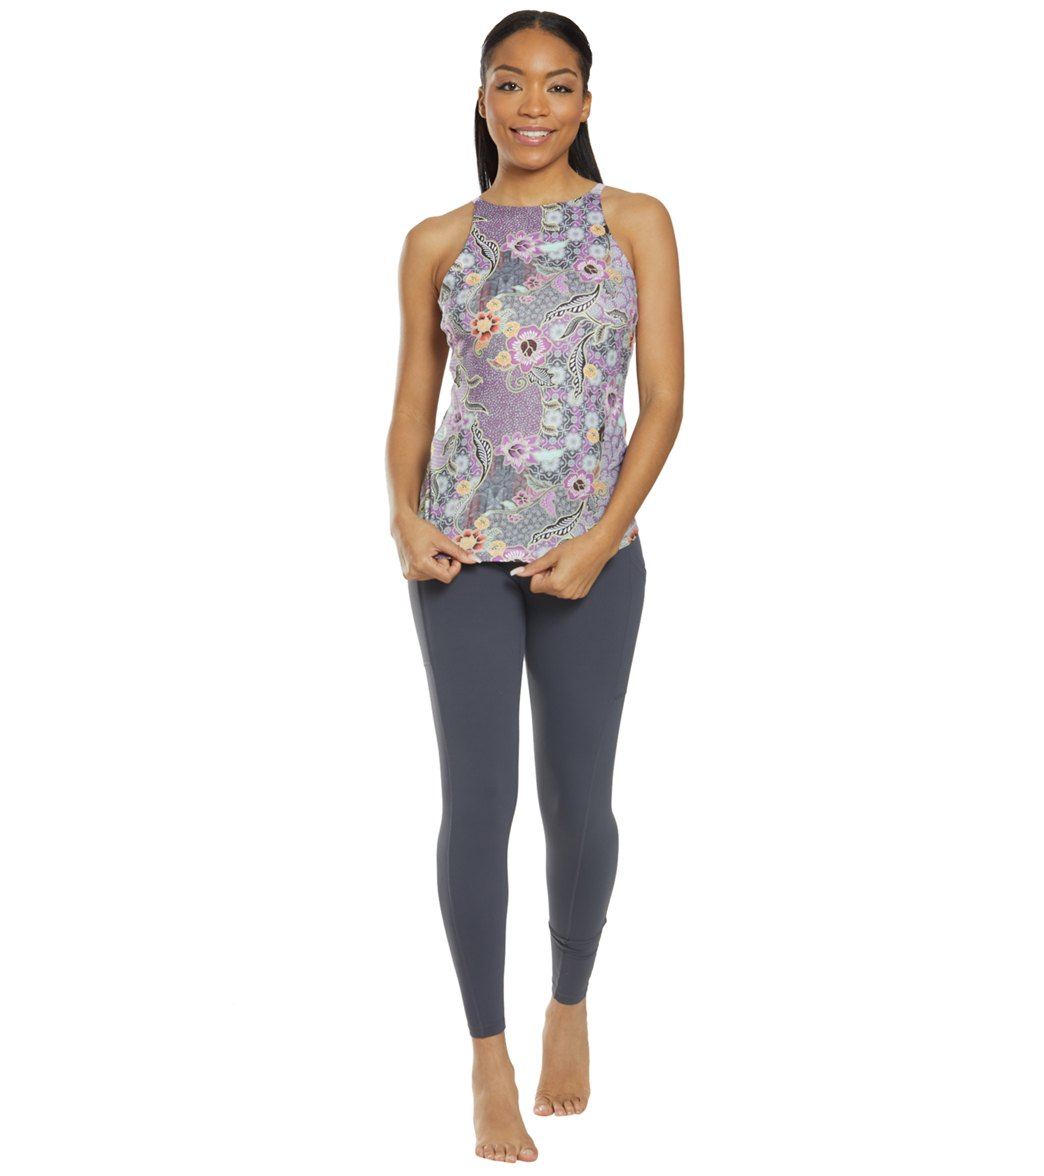 fcc5702c7910f Prana Emsley Top at YogaOutlet.com - Free Shipping